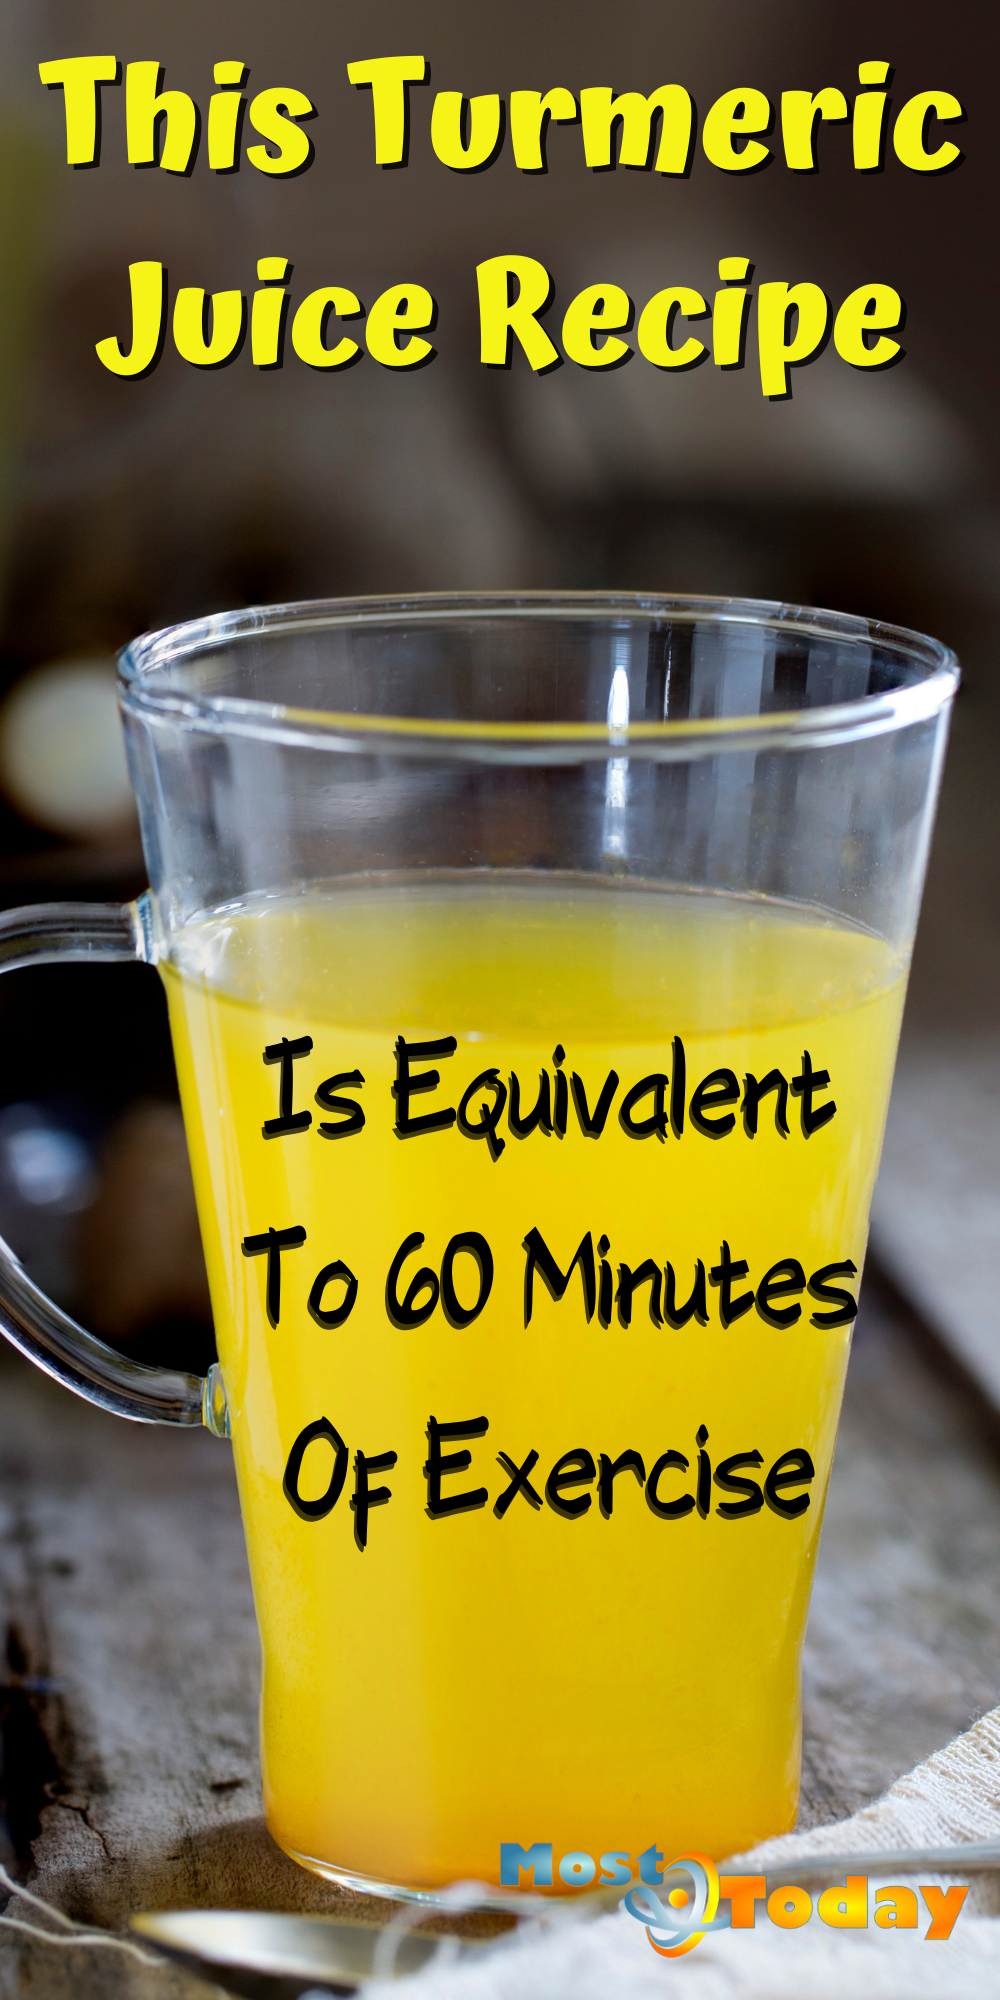 This Turmeric Juice Recipe Is Equivalent To 60 Minutes Of Exercise